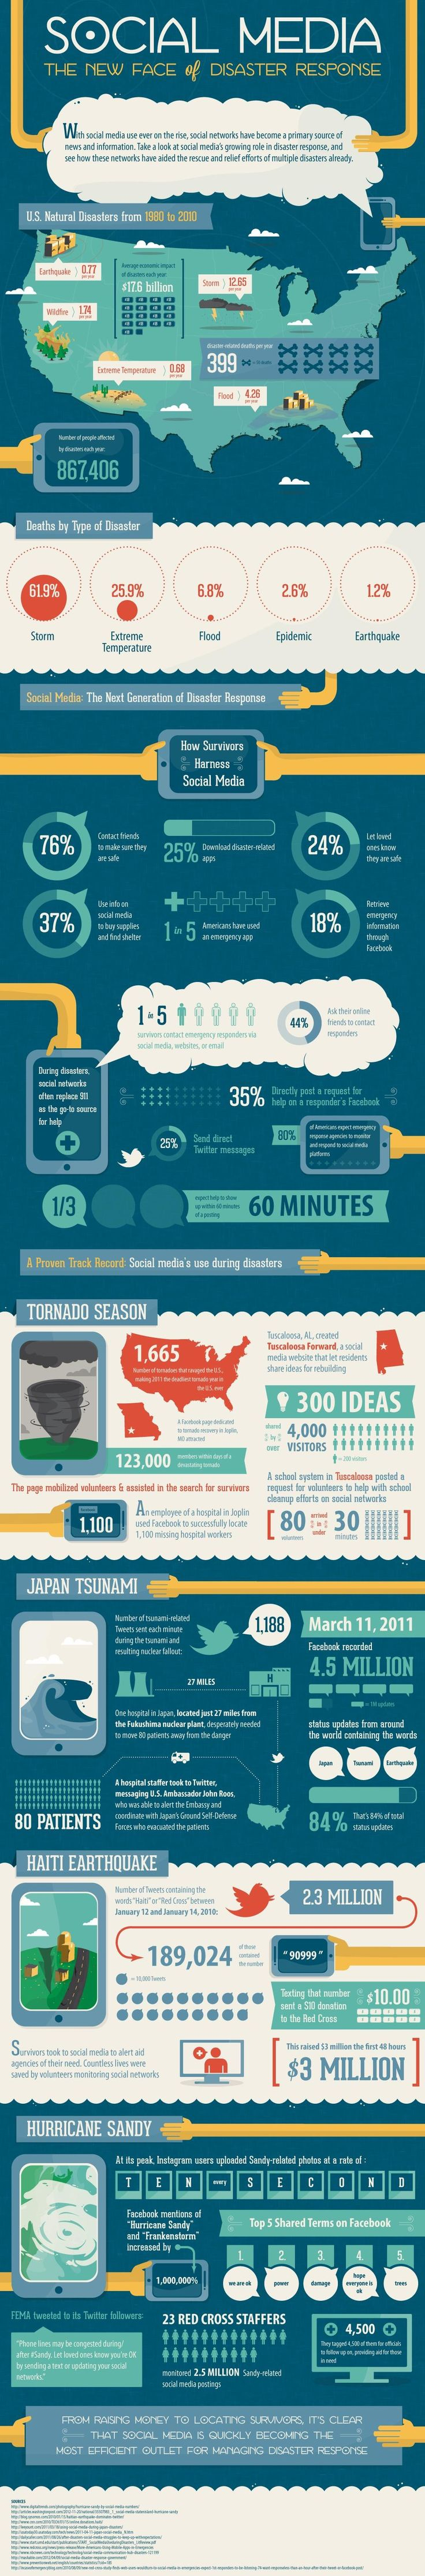 Social Media: The New Face of Disaster Relief